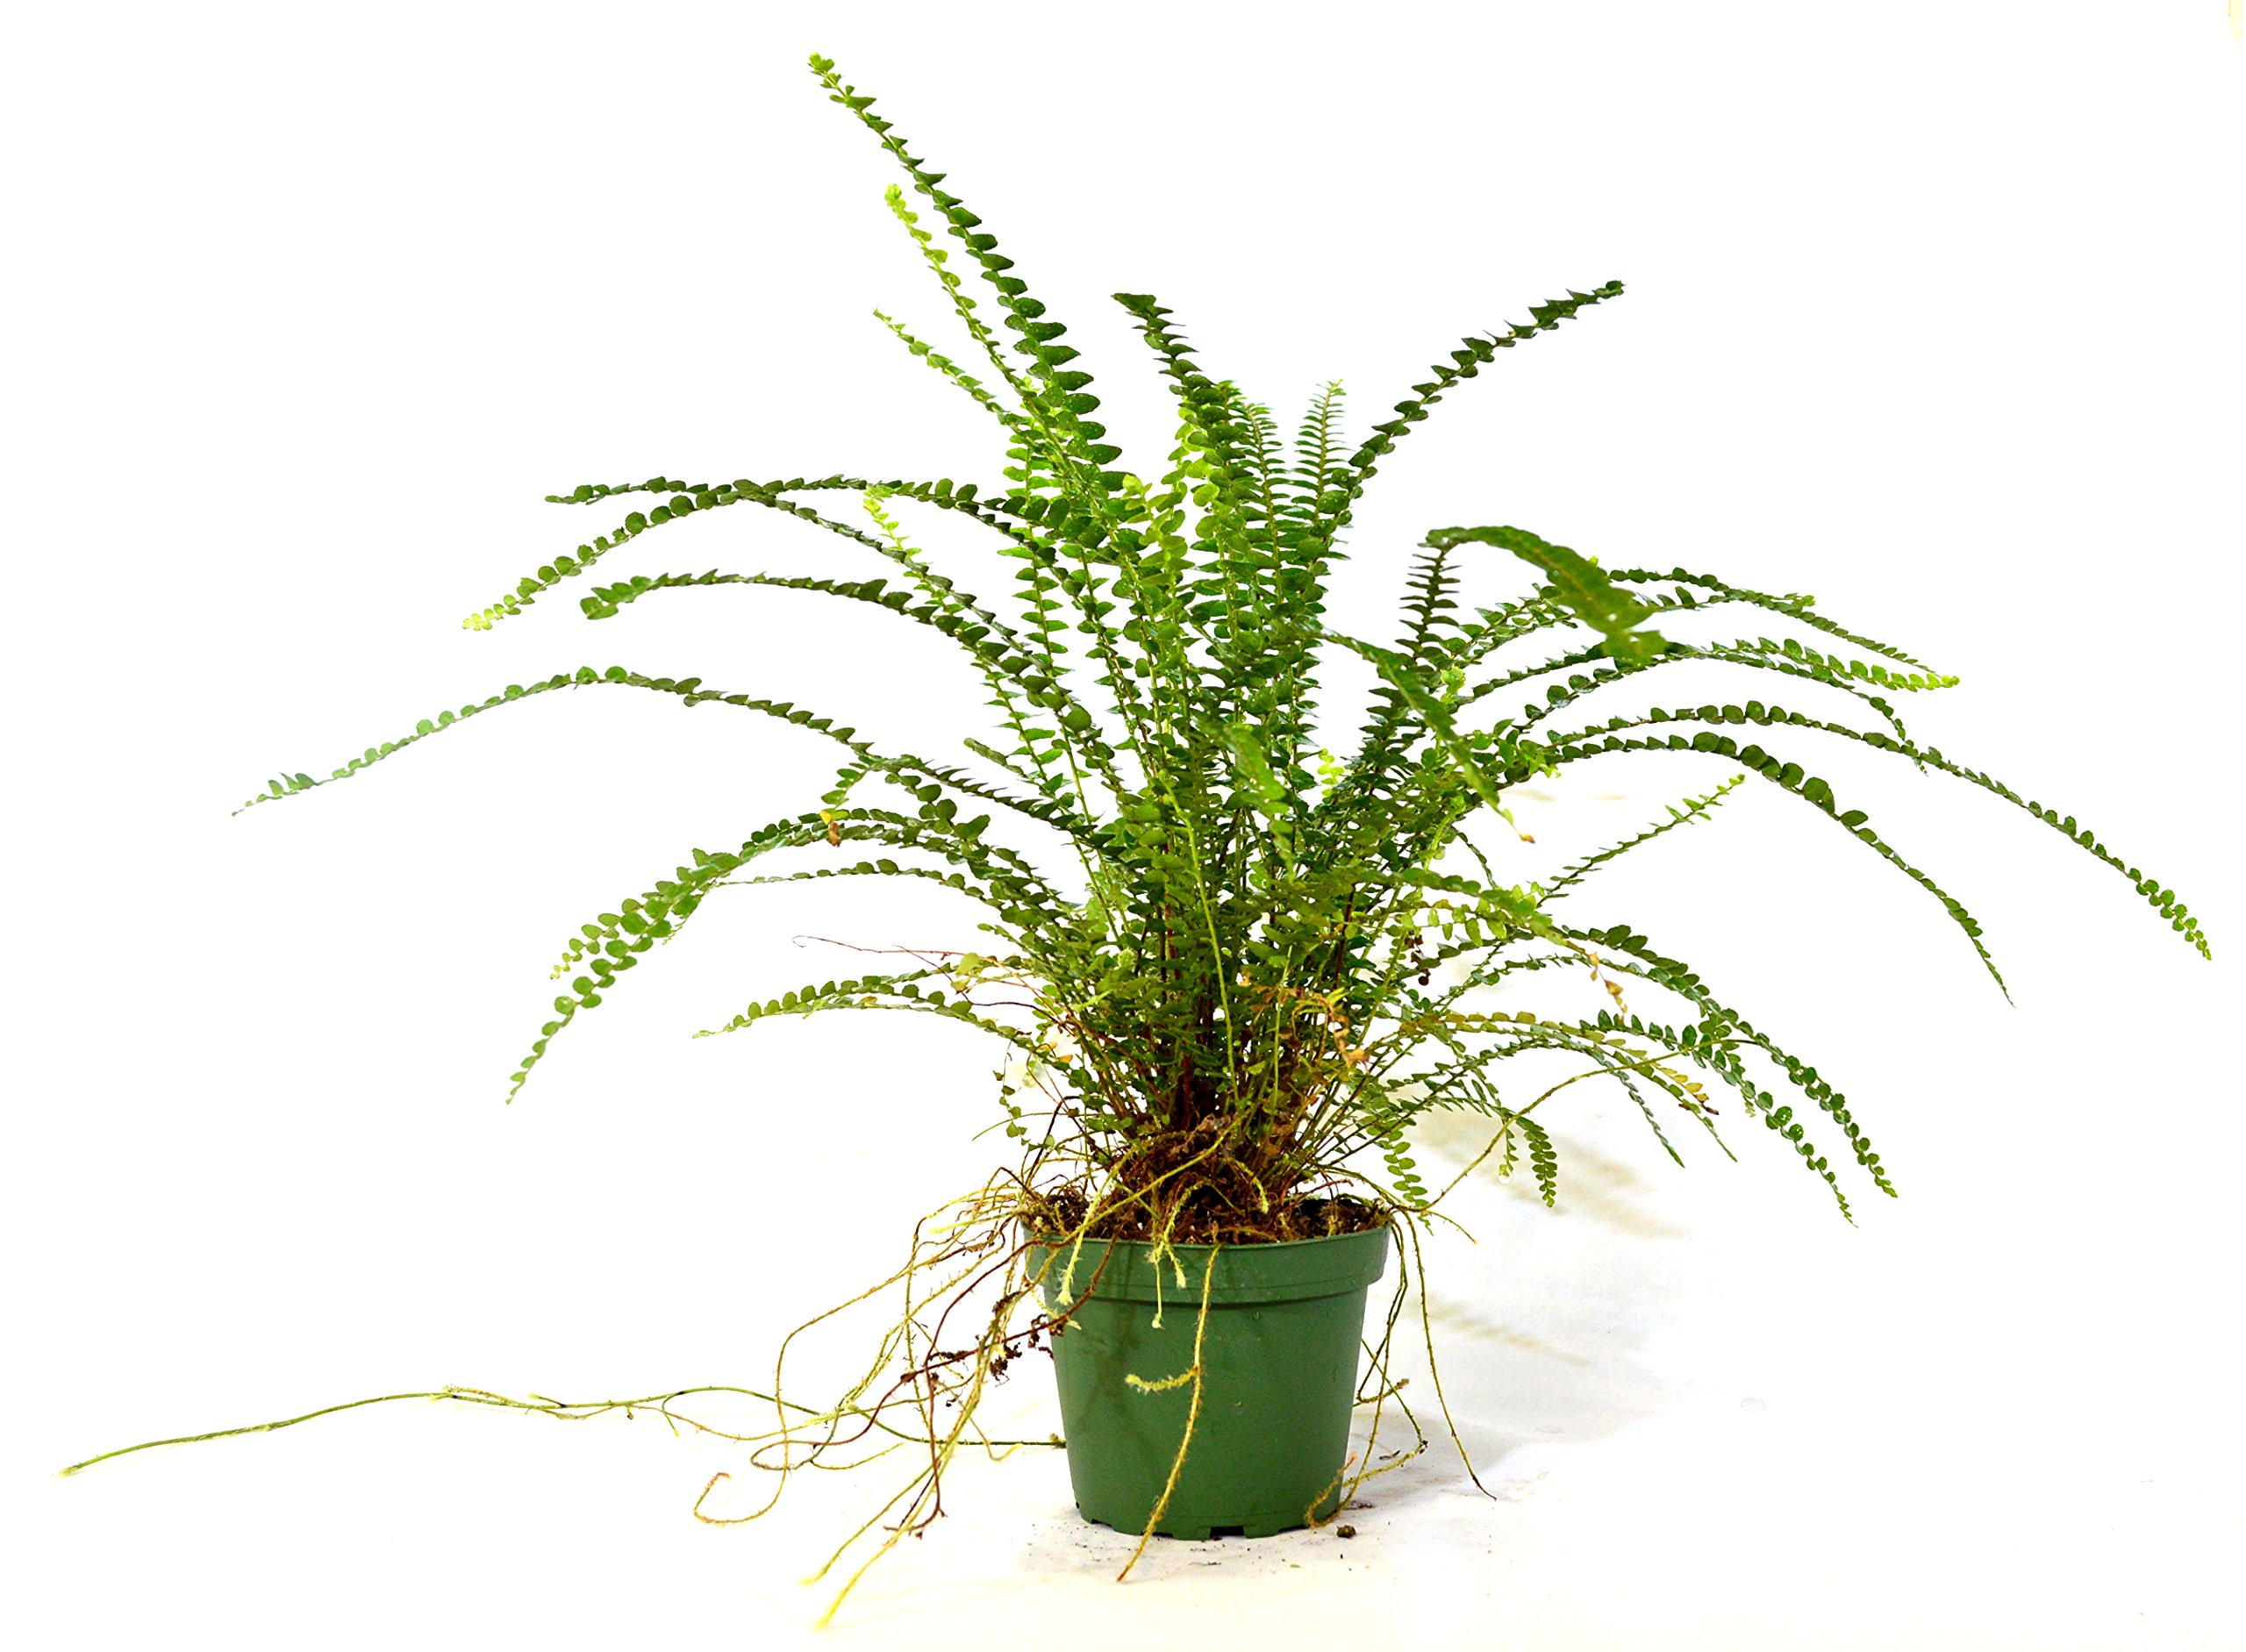 9GreenBox - Lemon Button Fern 4'' Pot - Nephrolepis cordifolia Duffii